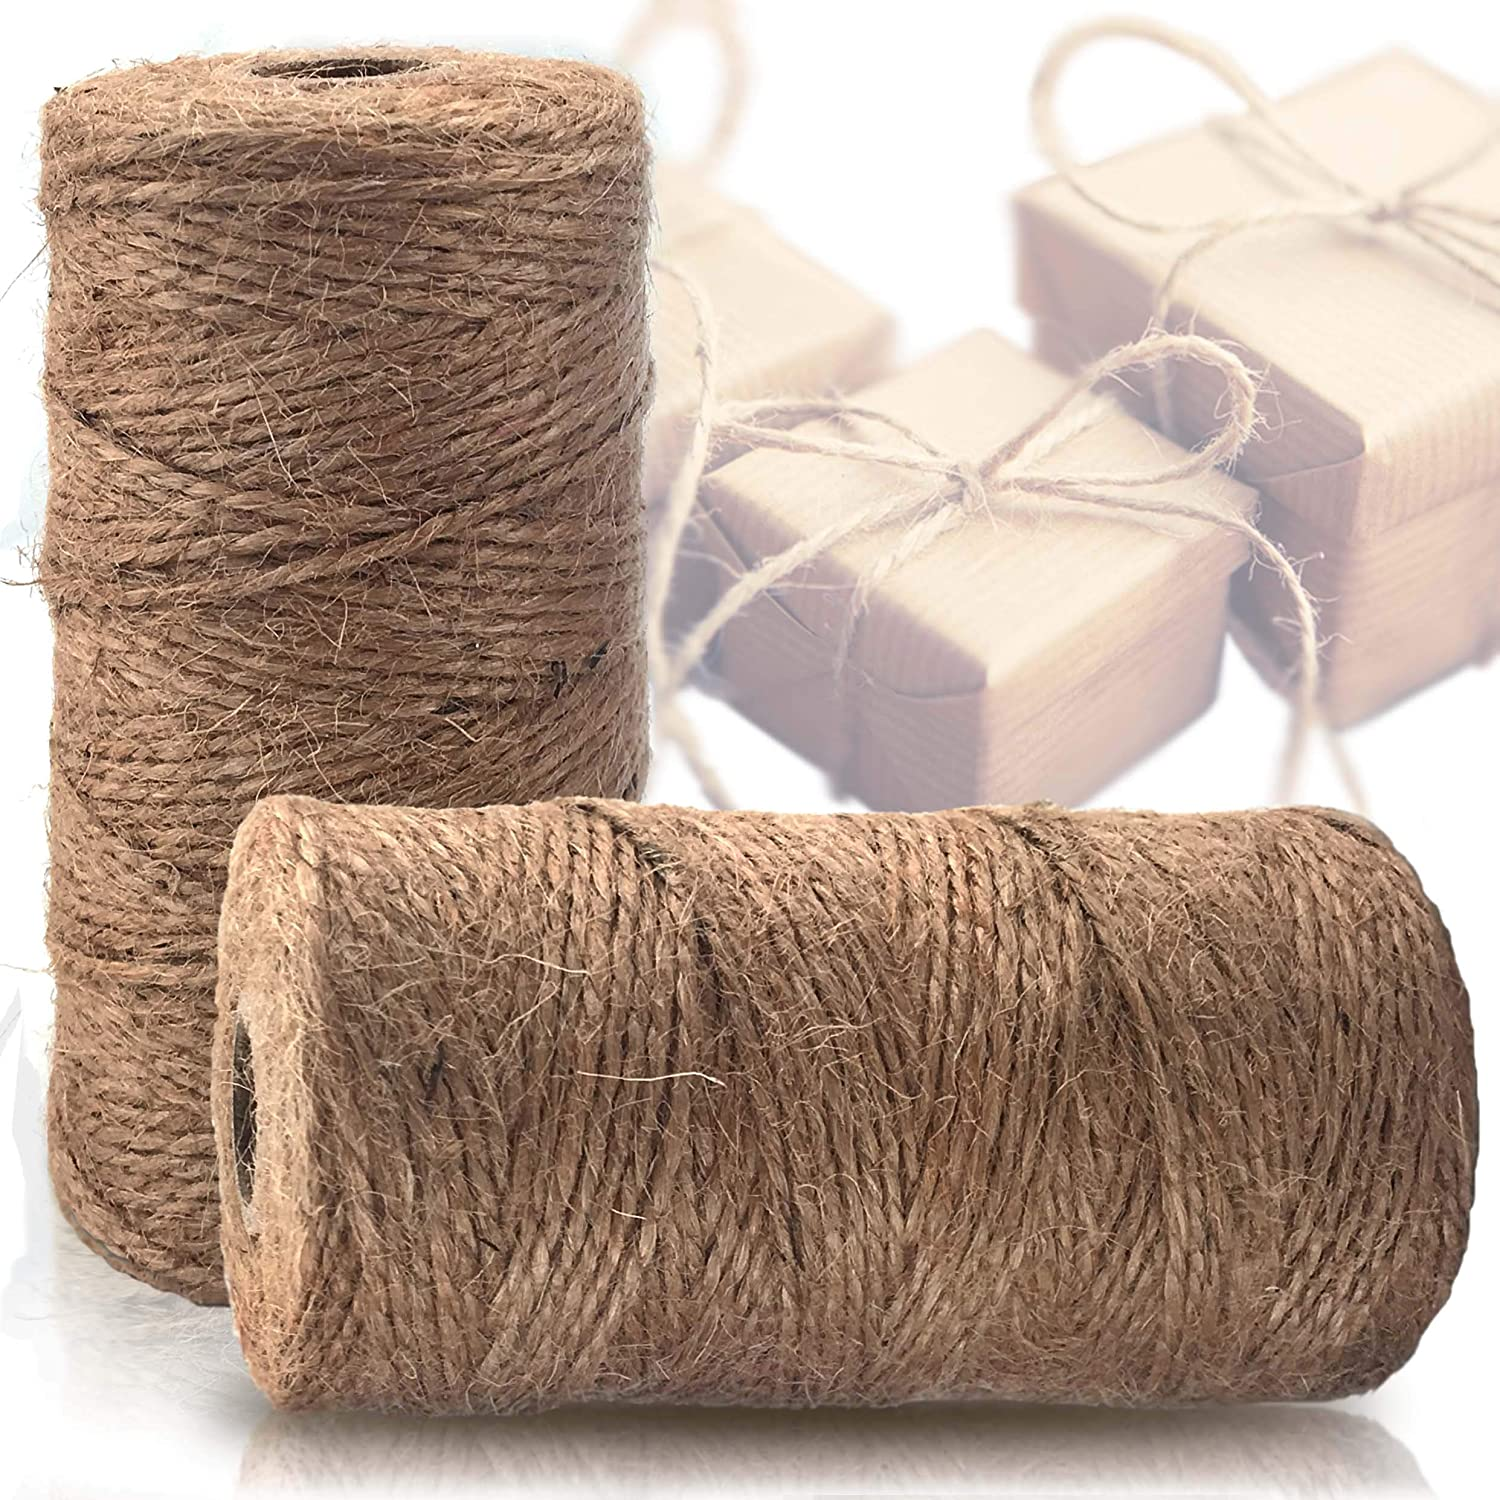 Natural Jute Twine 2 Pack - Best Crafting String for Craft Projects, Wrapping, Packing and More - 656 Feet of Thick Jute Rope to Use Around The House and Garden. Virtuosa Products